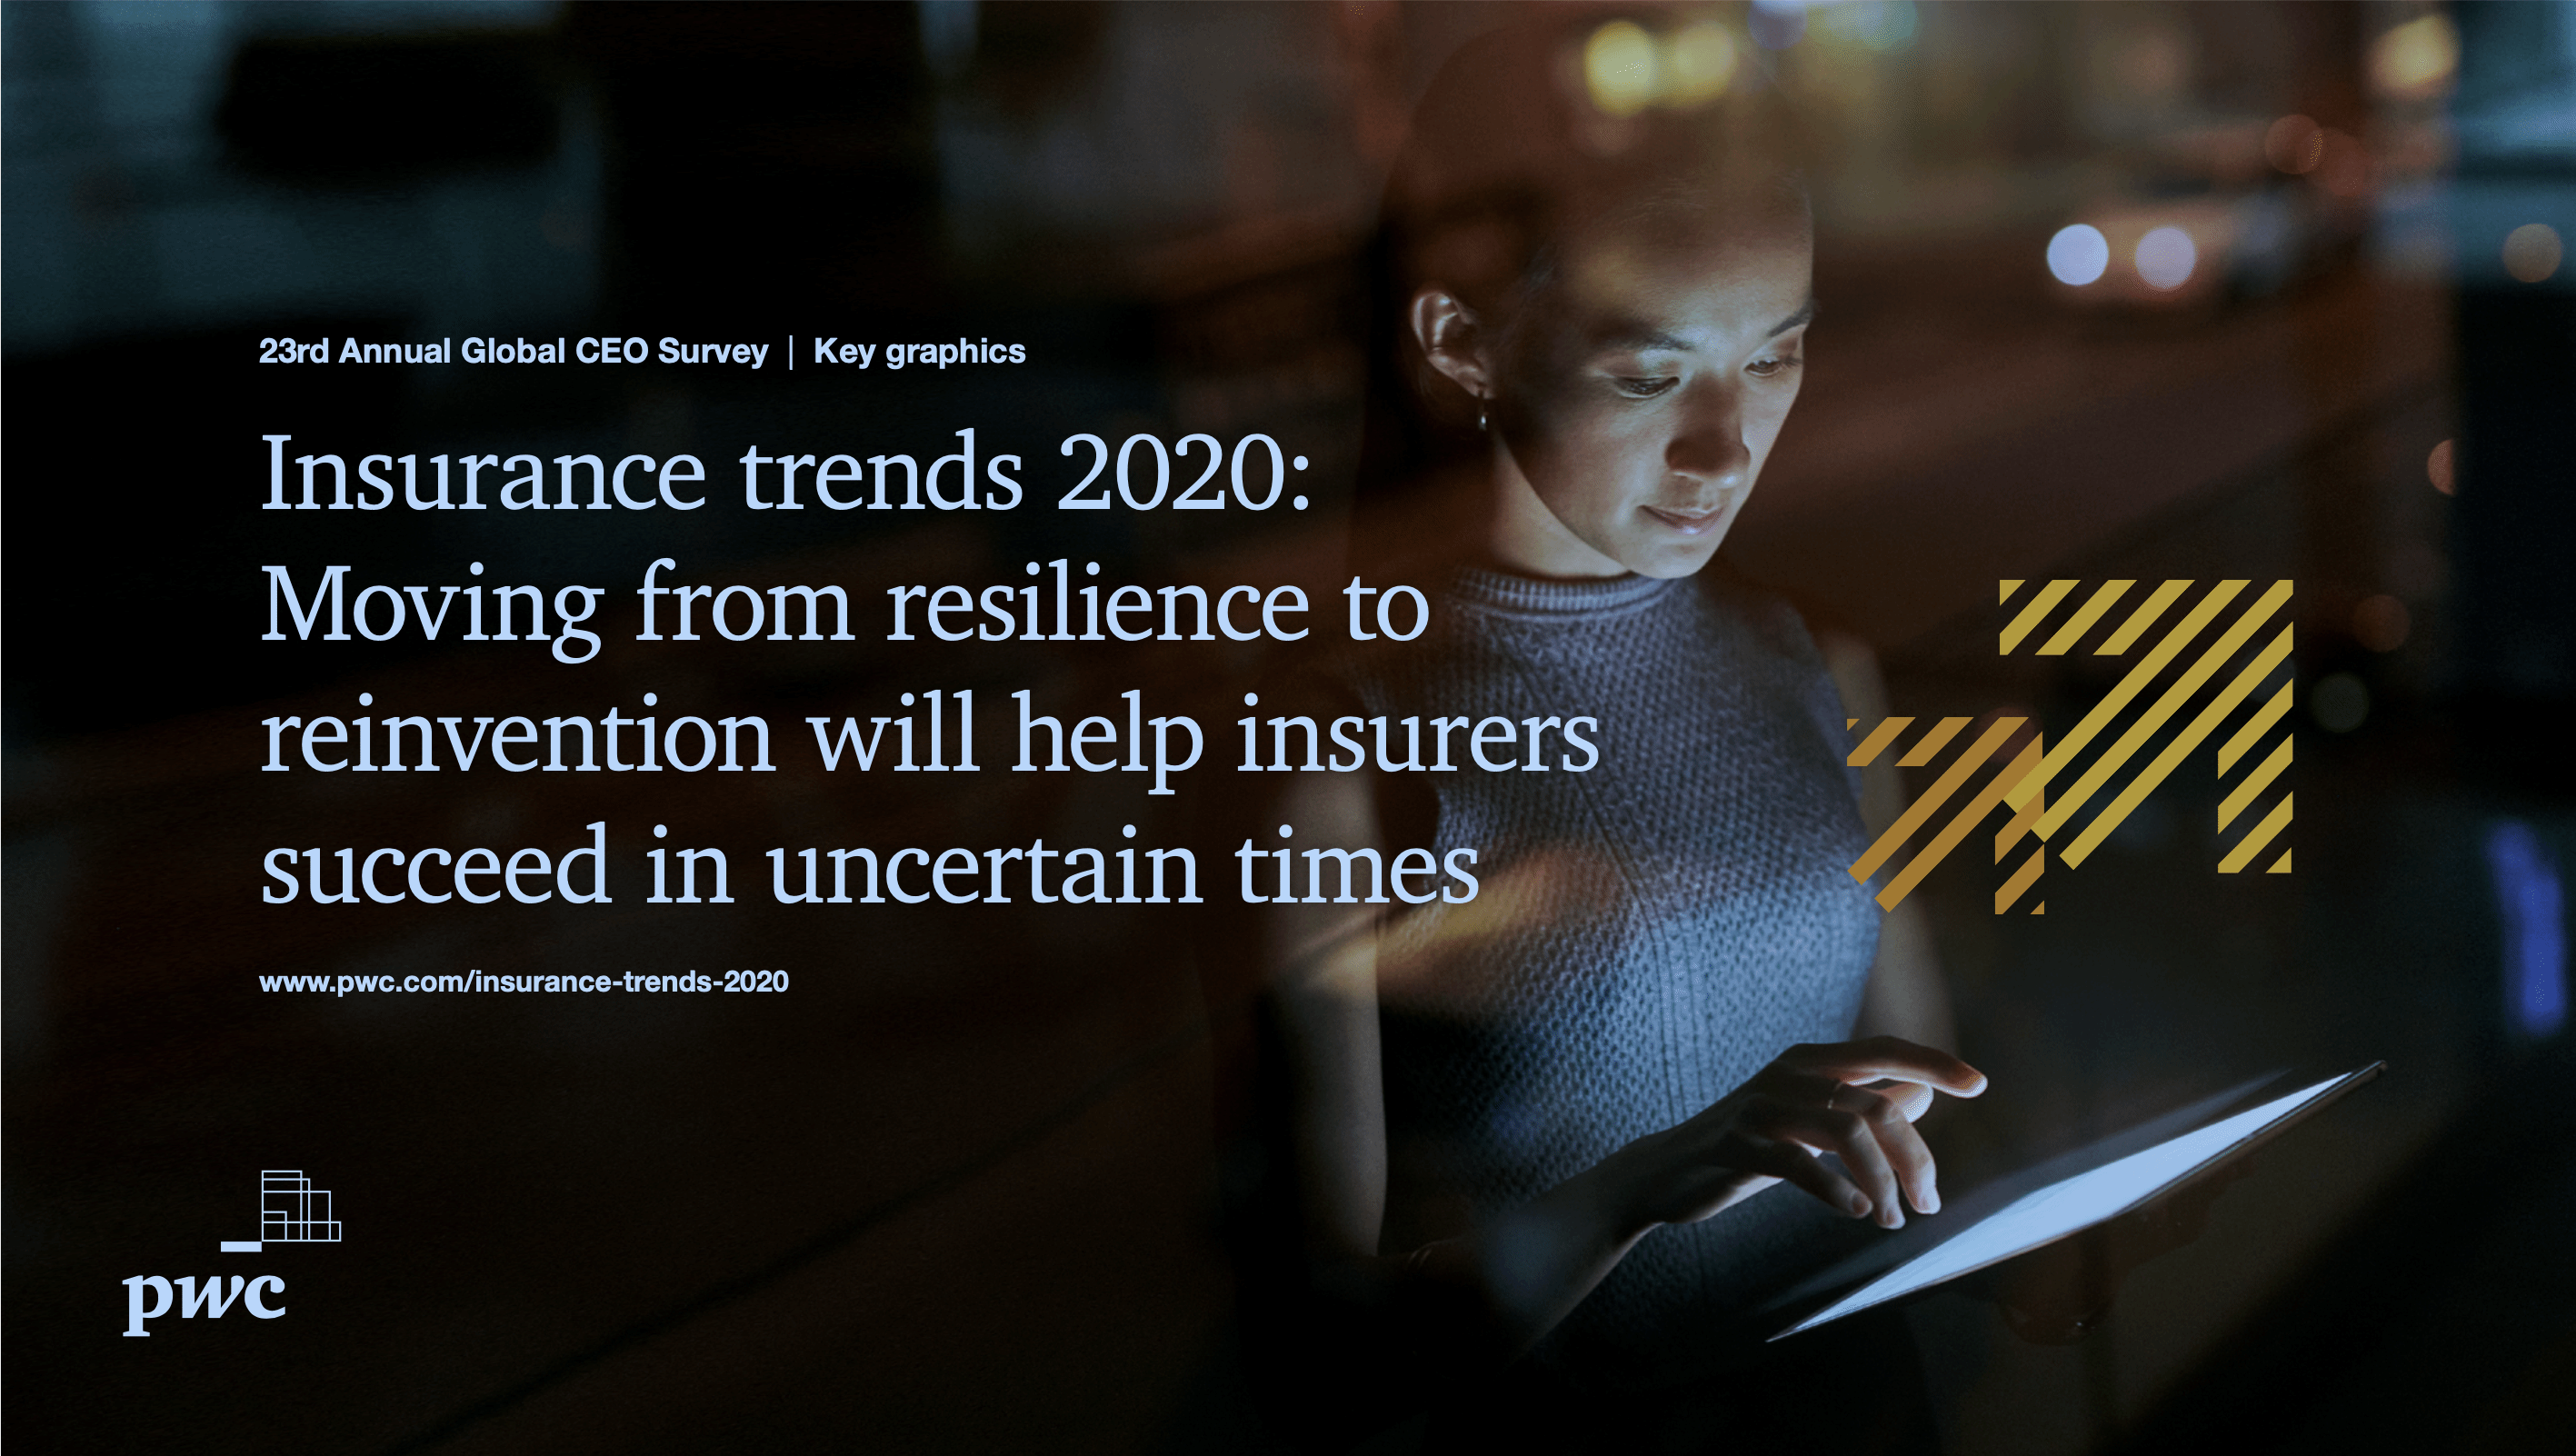 Insurance trends 2020: Moving from resilience to reinvention will help insurers